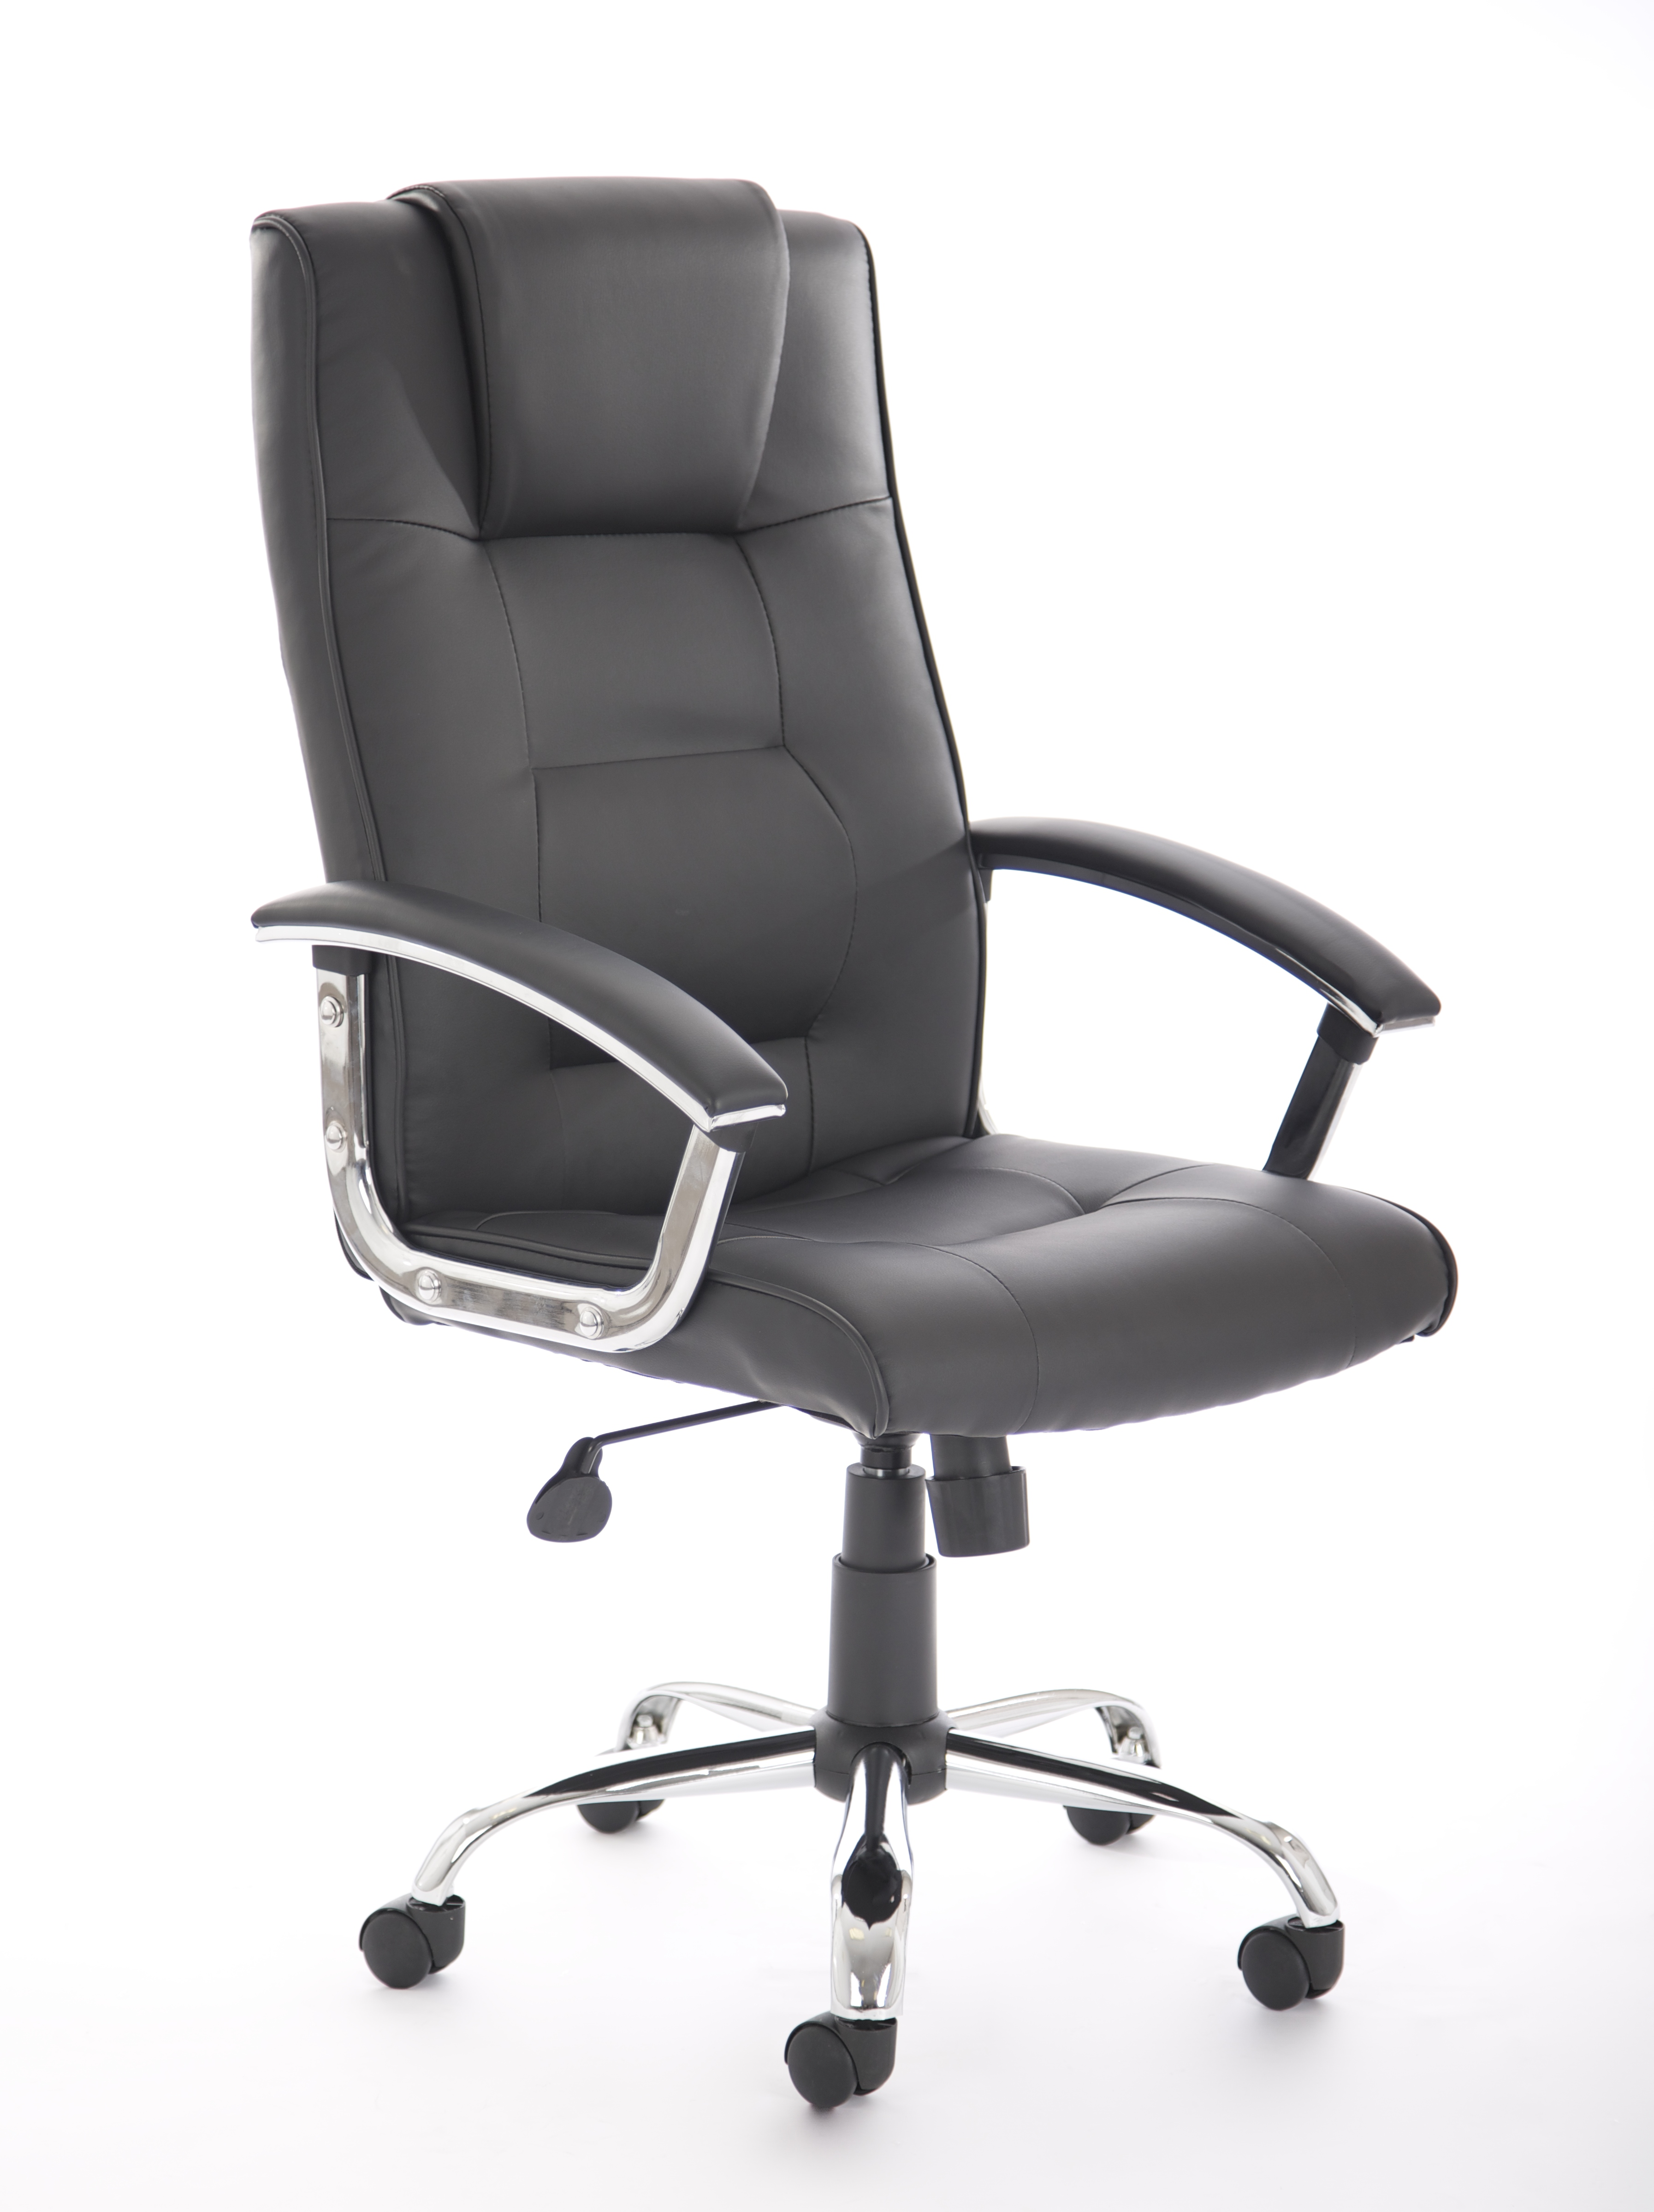 Executive Chairs Thrift Executive Chair Black Soft Bonded Leather EX000163